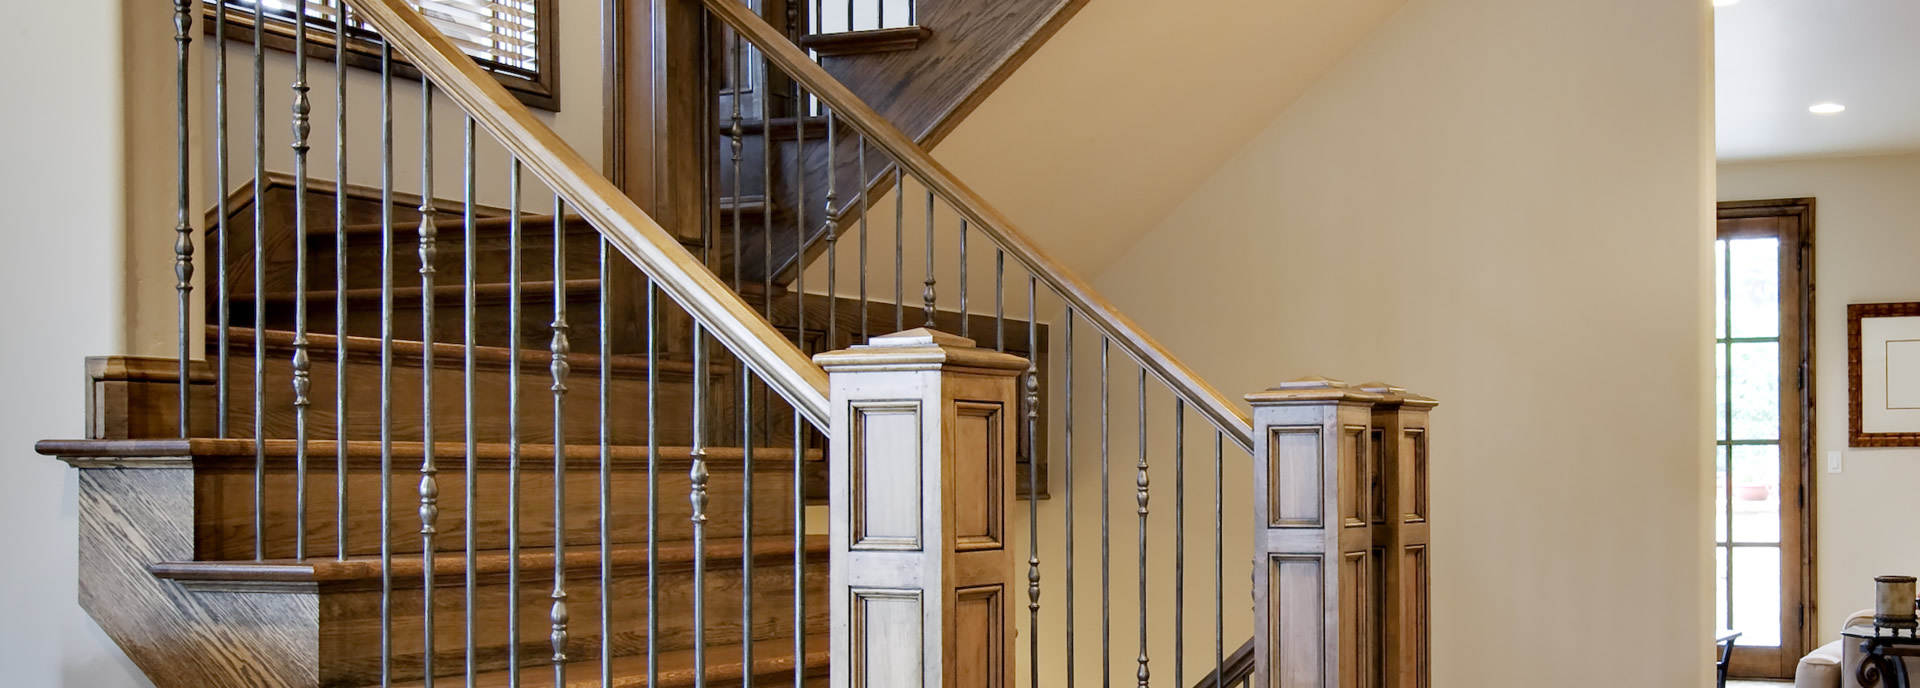 With over 54 million stair treads built, we share some of our favorites Alpharetta, GA